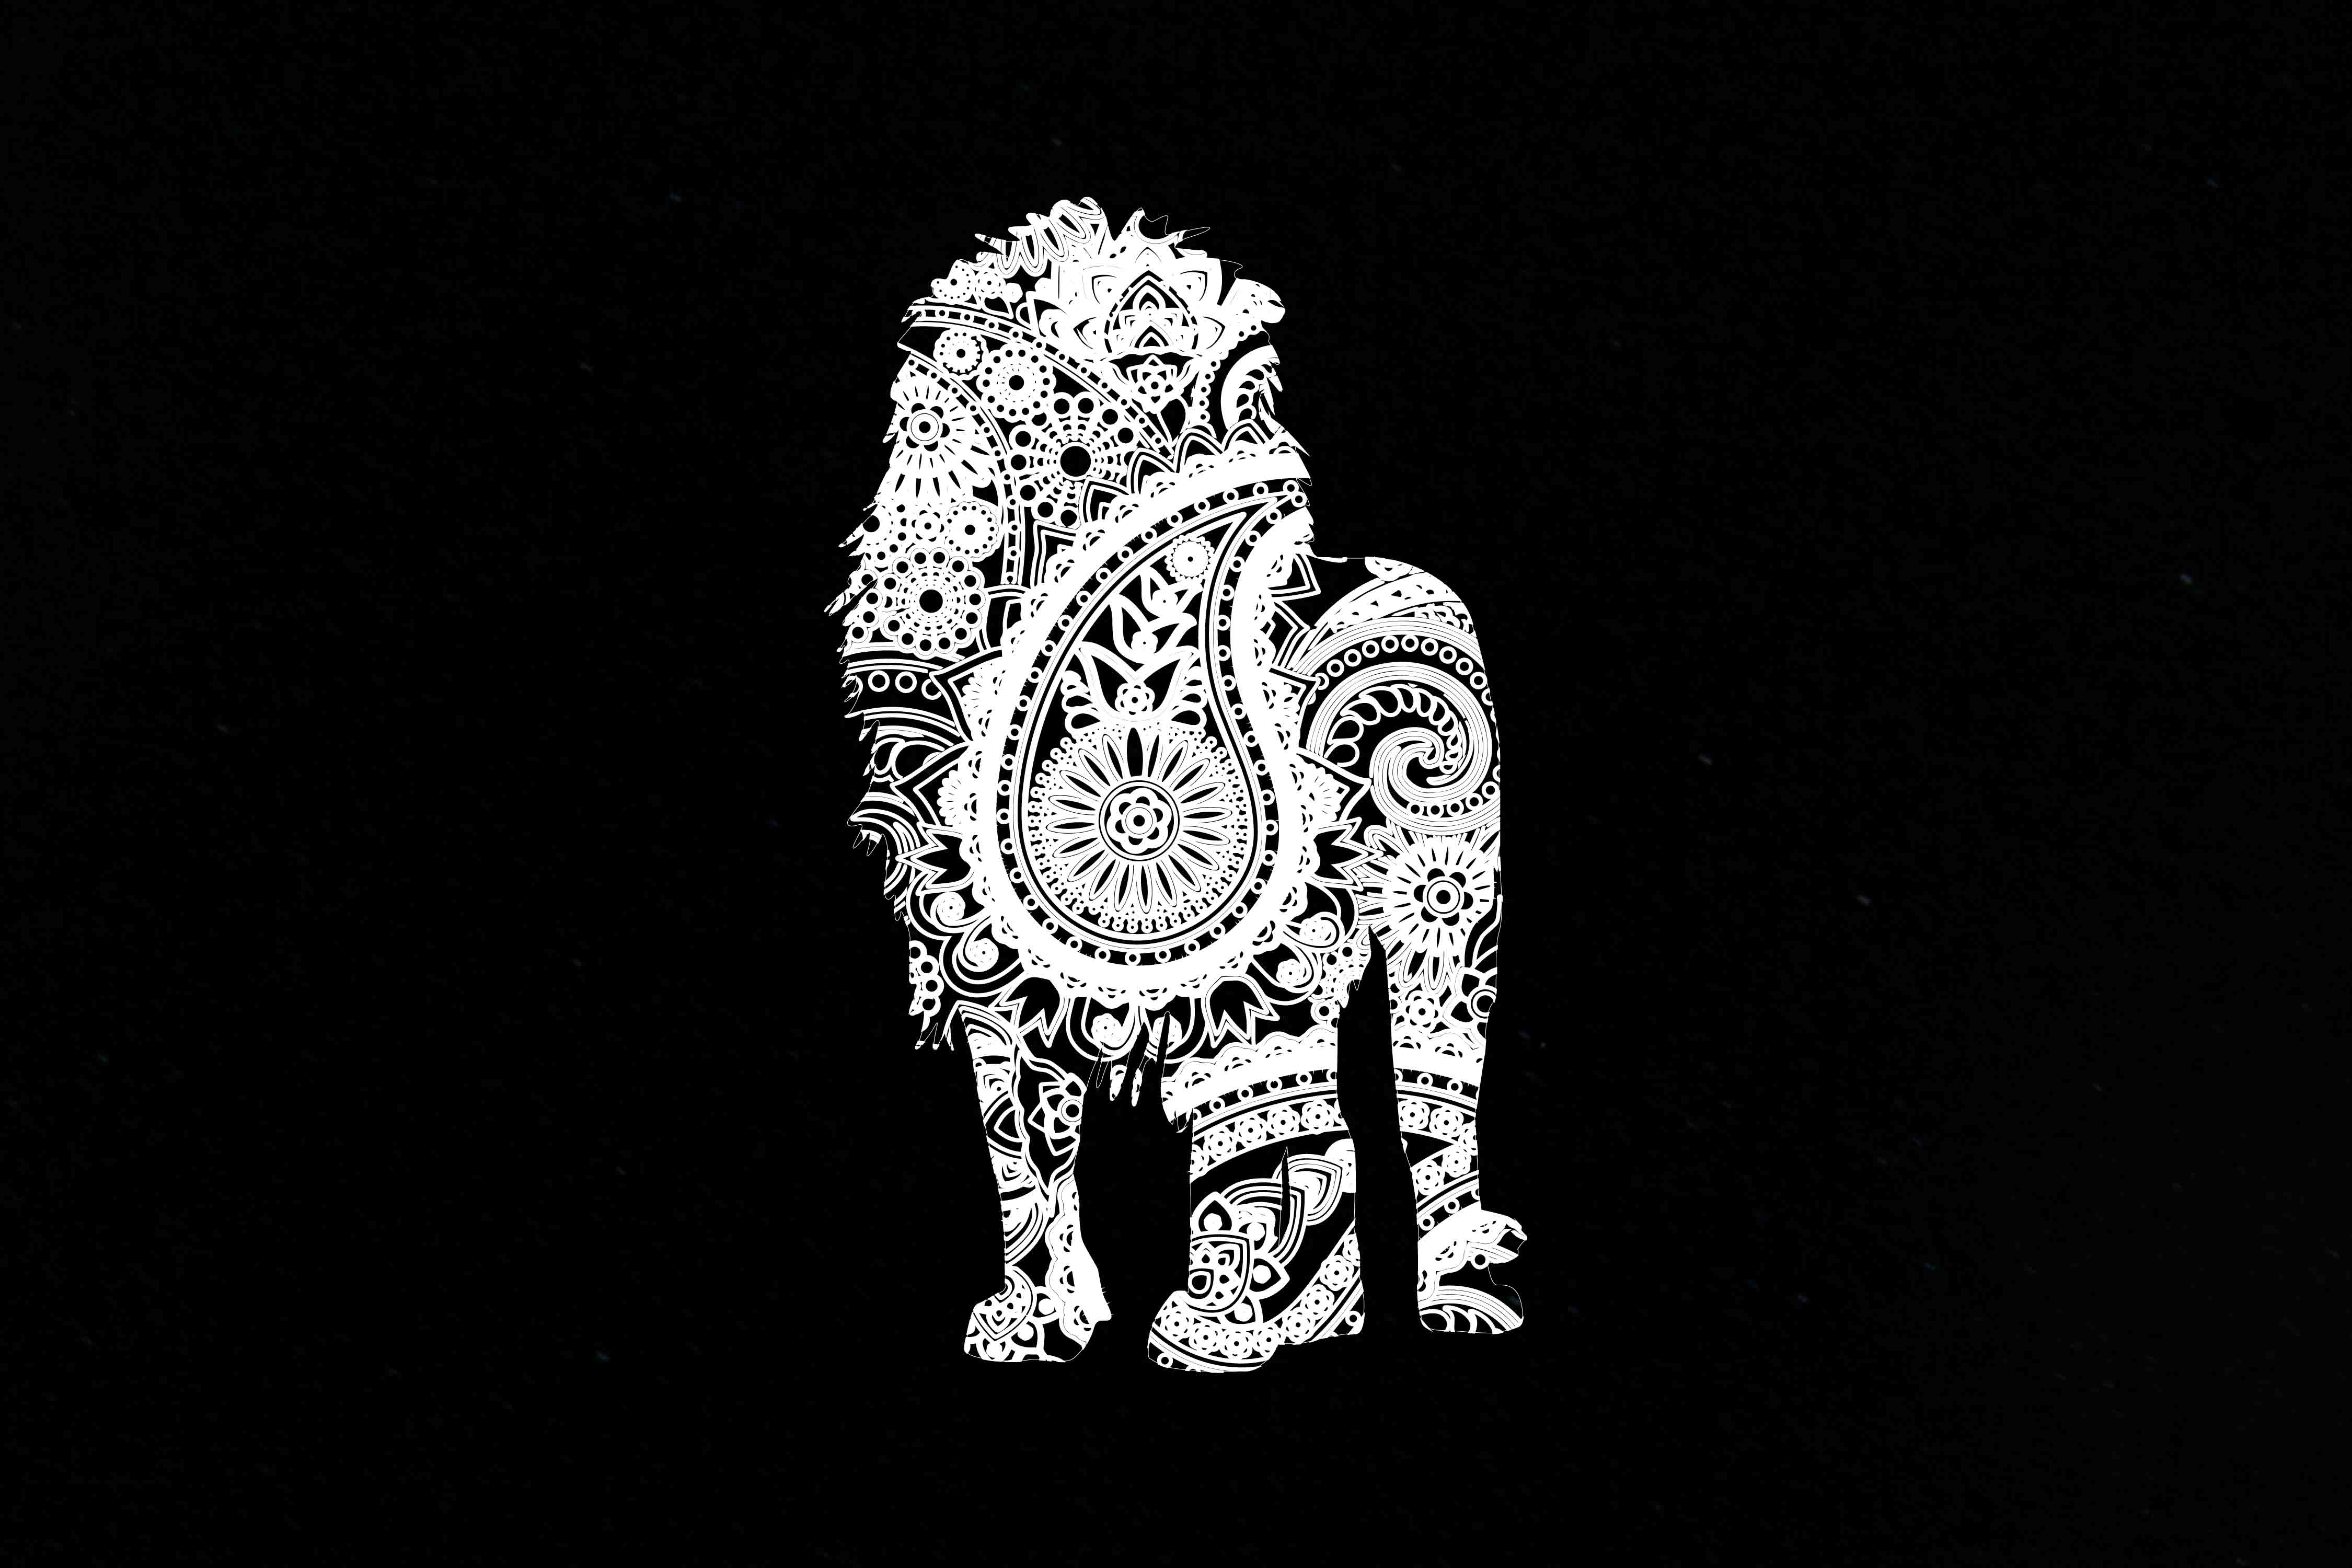 Download Free Mandala White Lion Svg Graphic By Twelvepapers Creative Fabrica for Cricut Explore, Silhouette and other cutting machines.